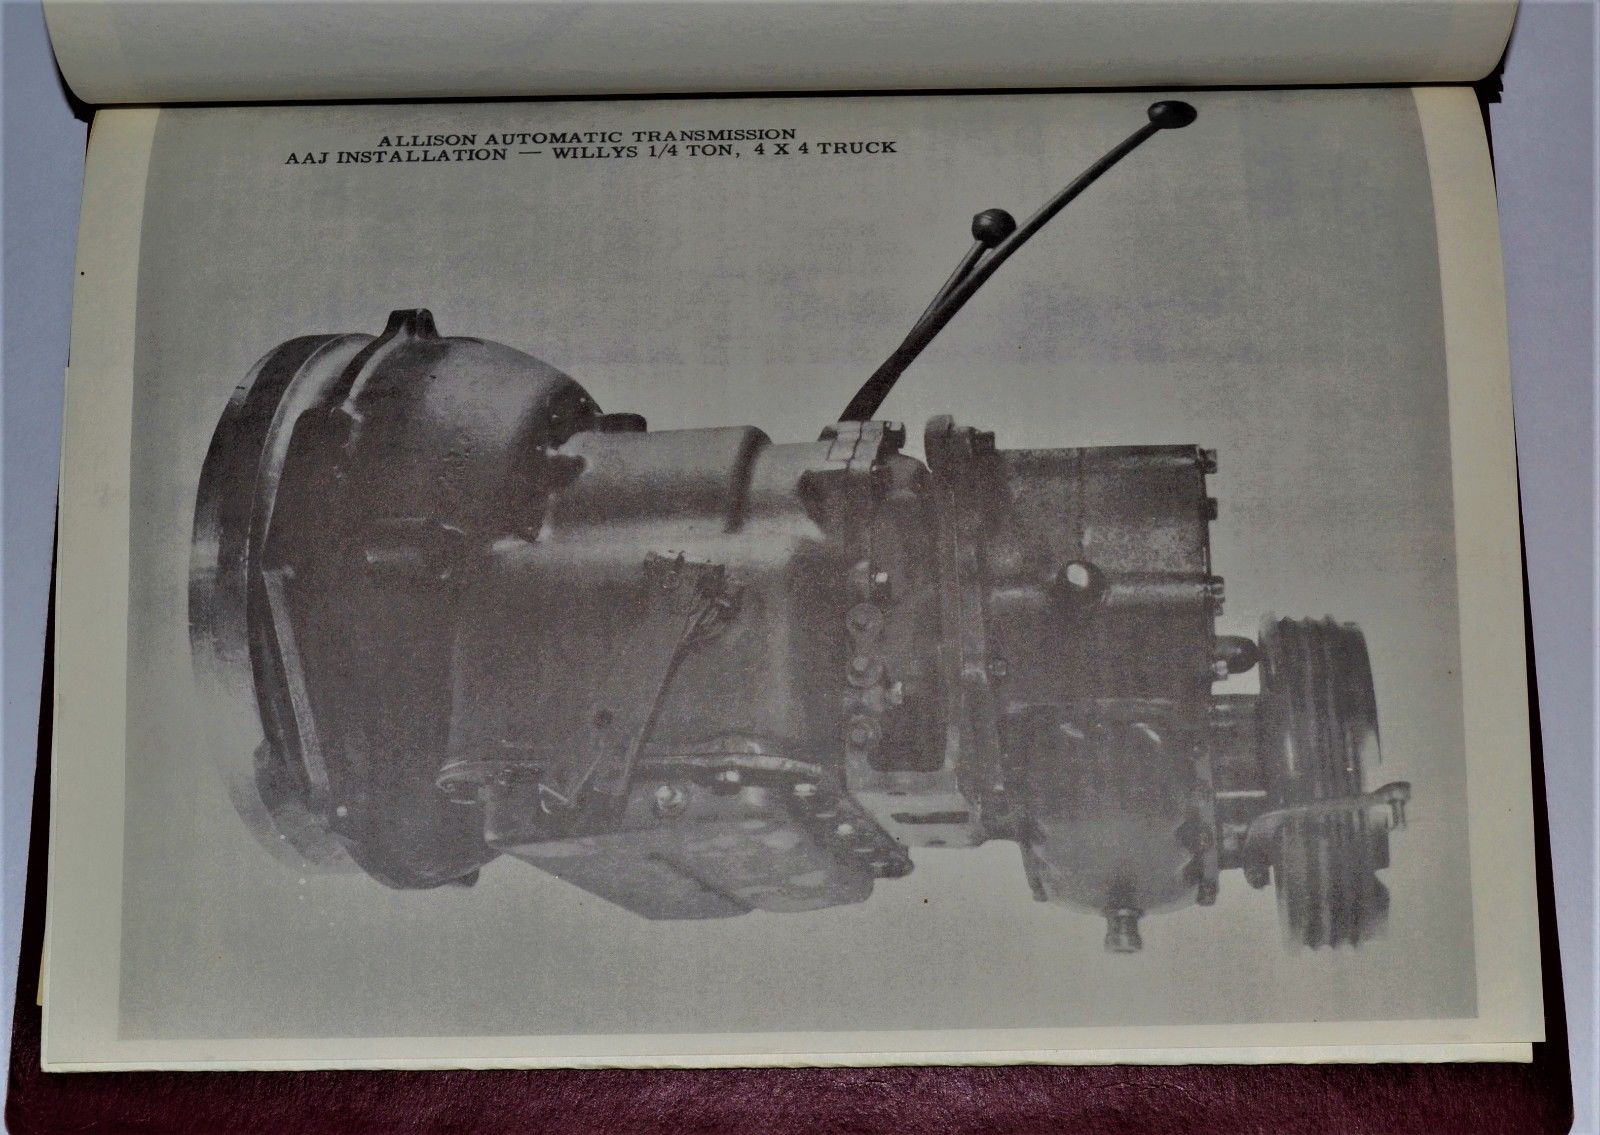 1952-m38a1-transmission-document7